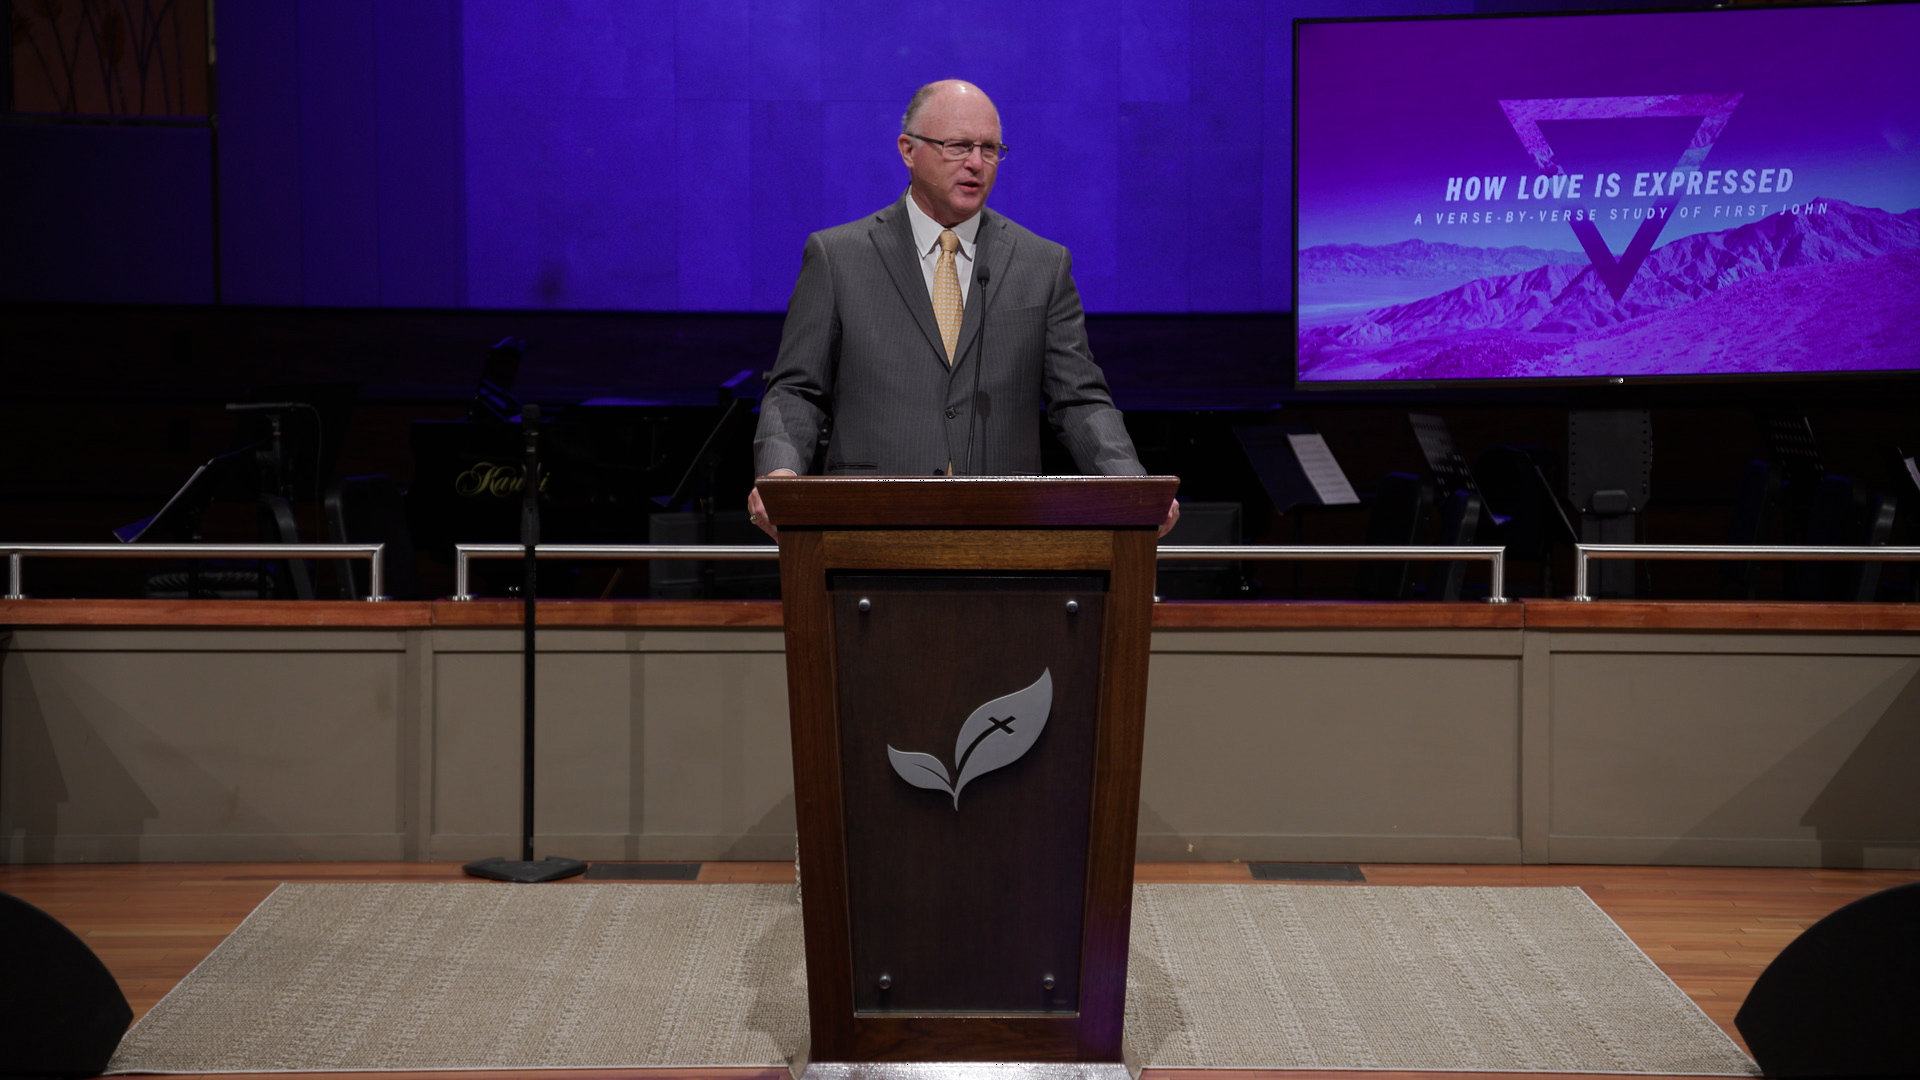 Pastor Paul Chappell: How Love Is Expressed